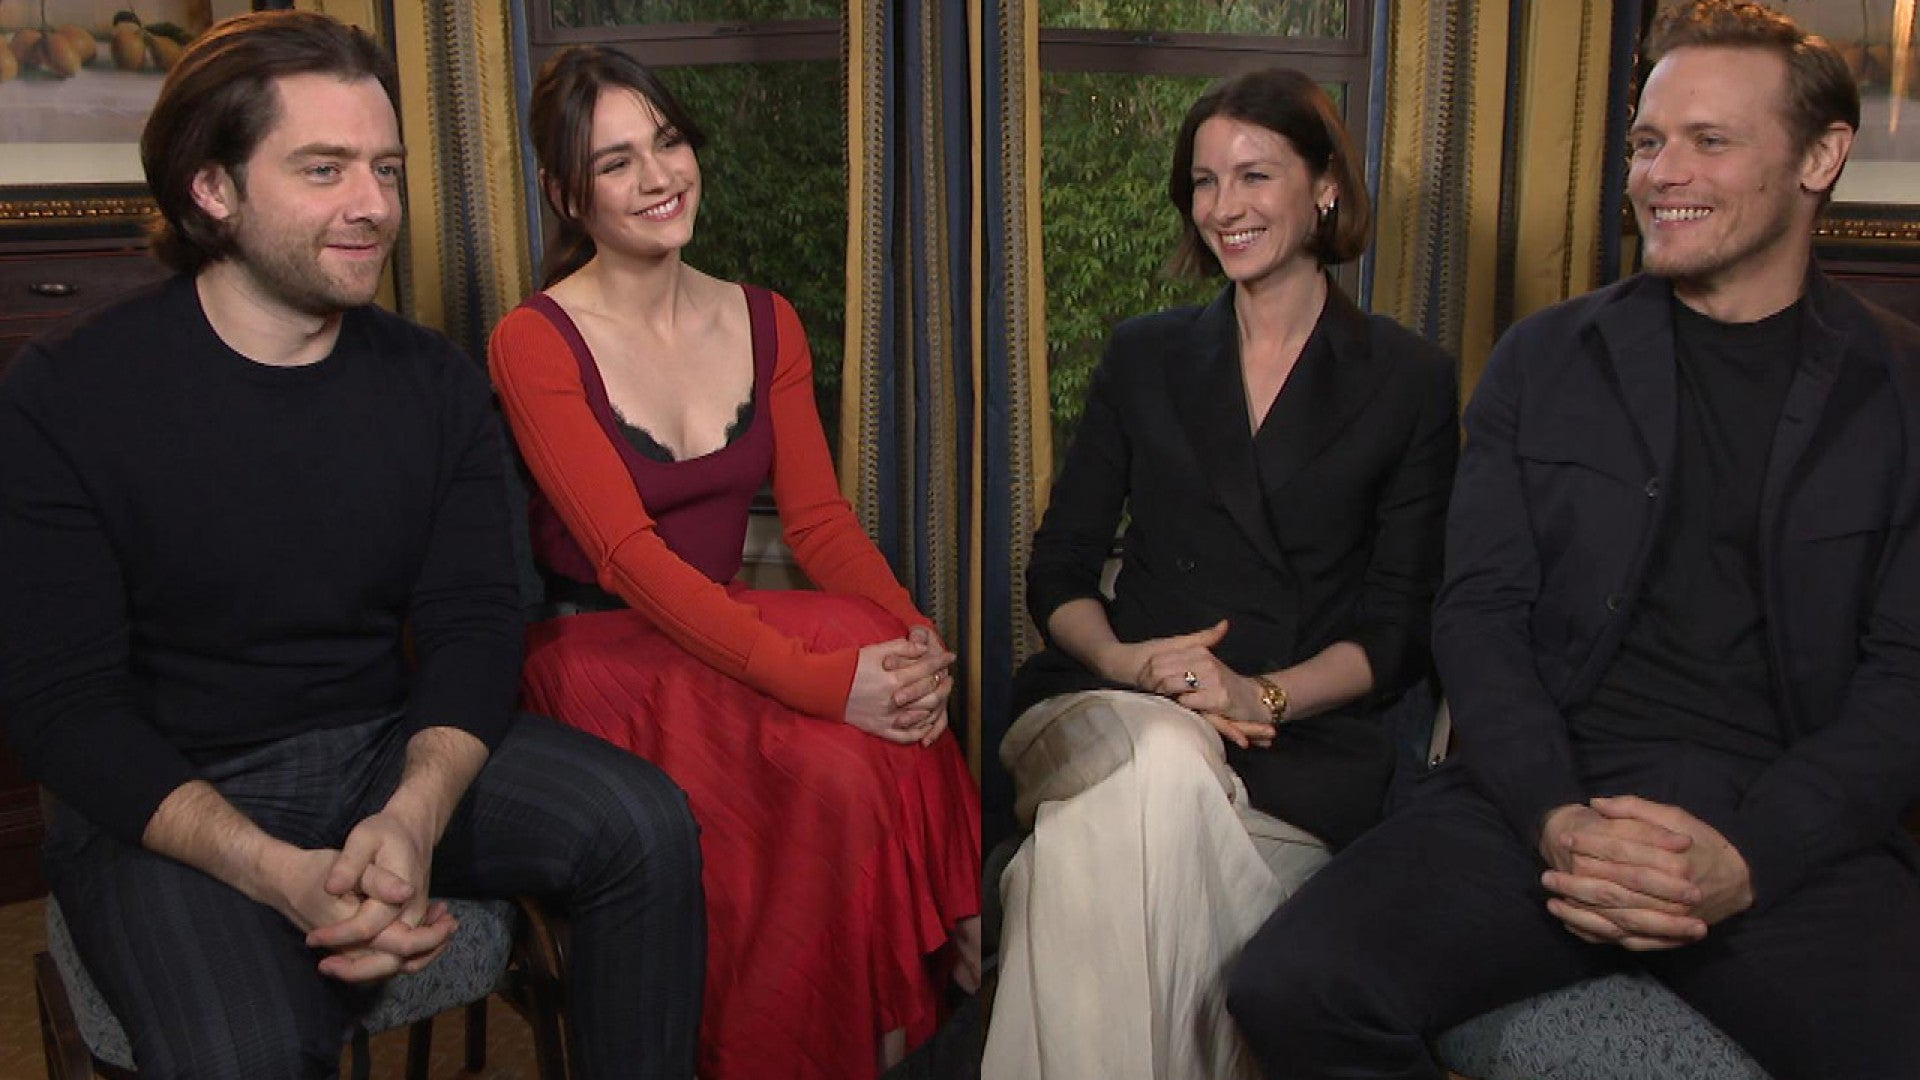 Outlander Season 5 Sam Heughan And Caitriona Balfe On Favorite Episode Set Secrets Exclusive Entertainment Tonight